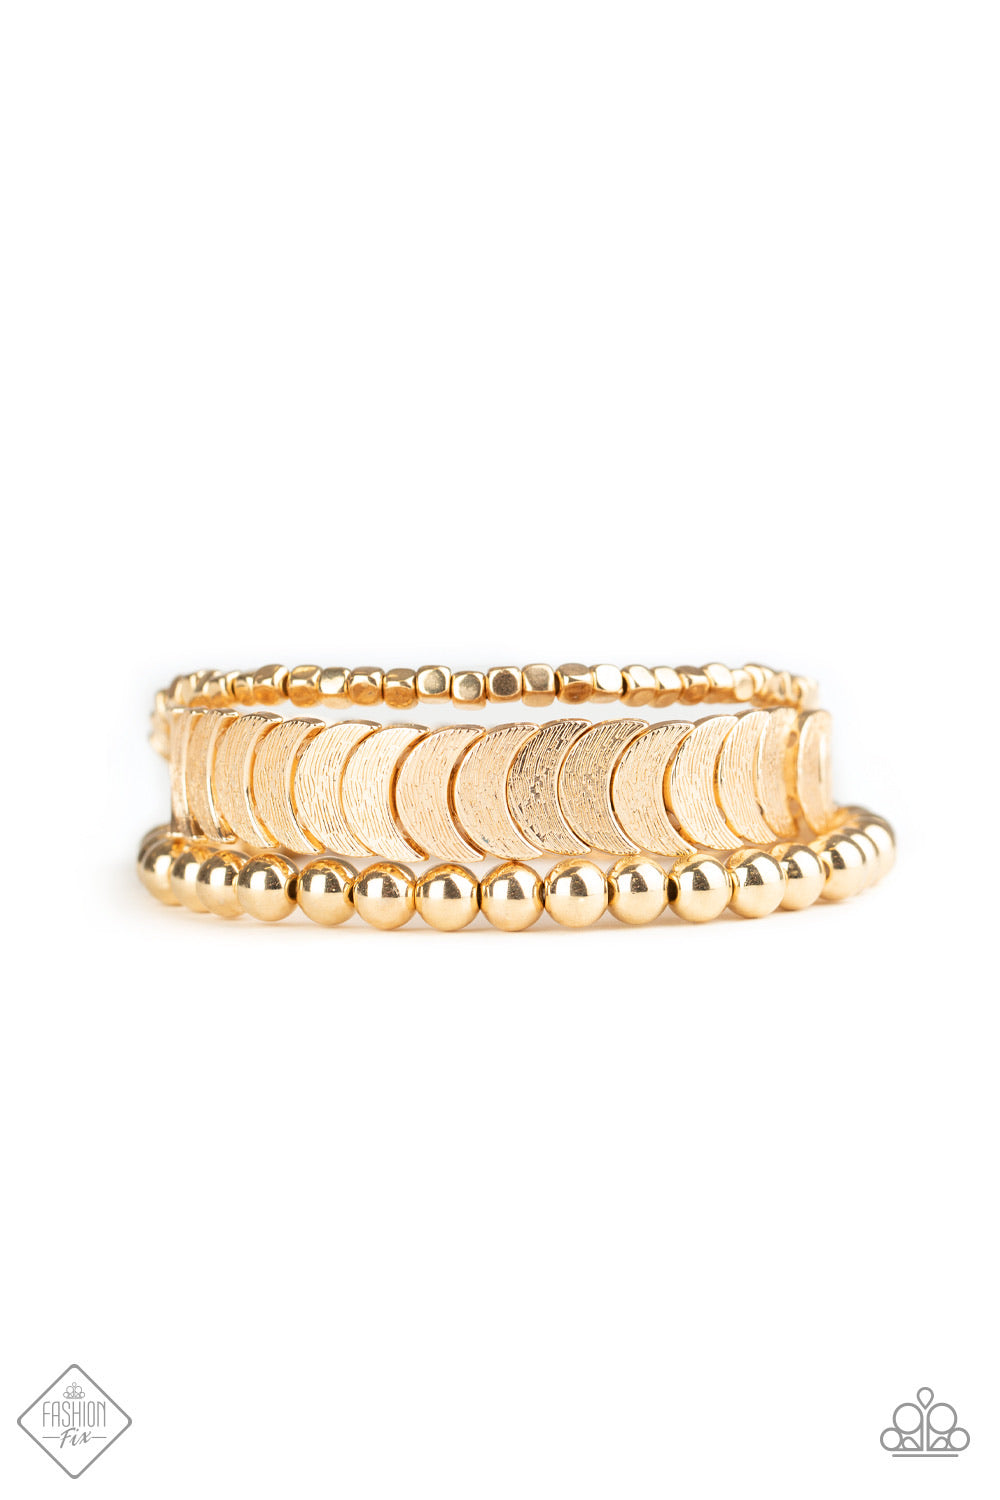 LAYER It On Me - Gold Bracelet - Paparazzi Accessories